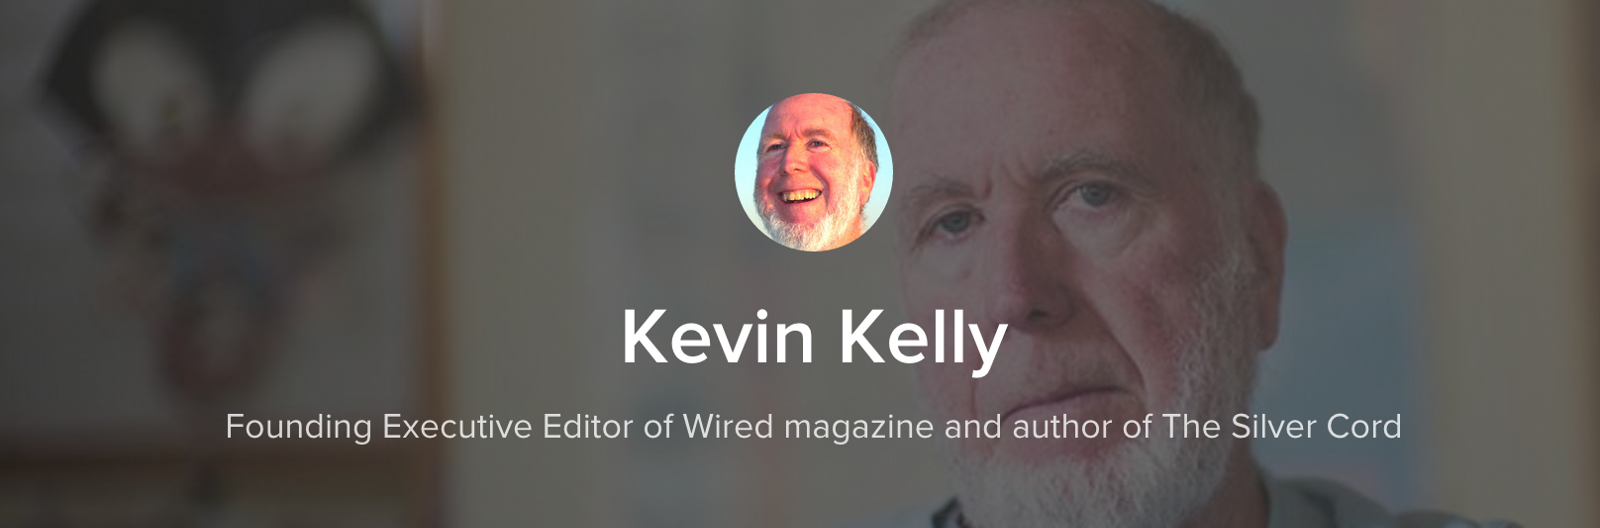 kevin kelly wired magazine